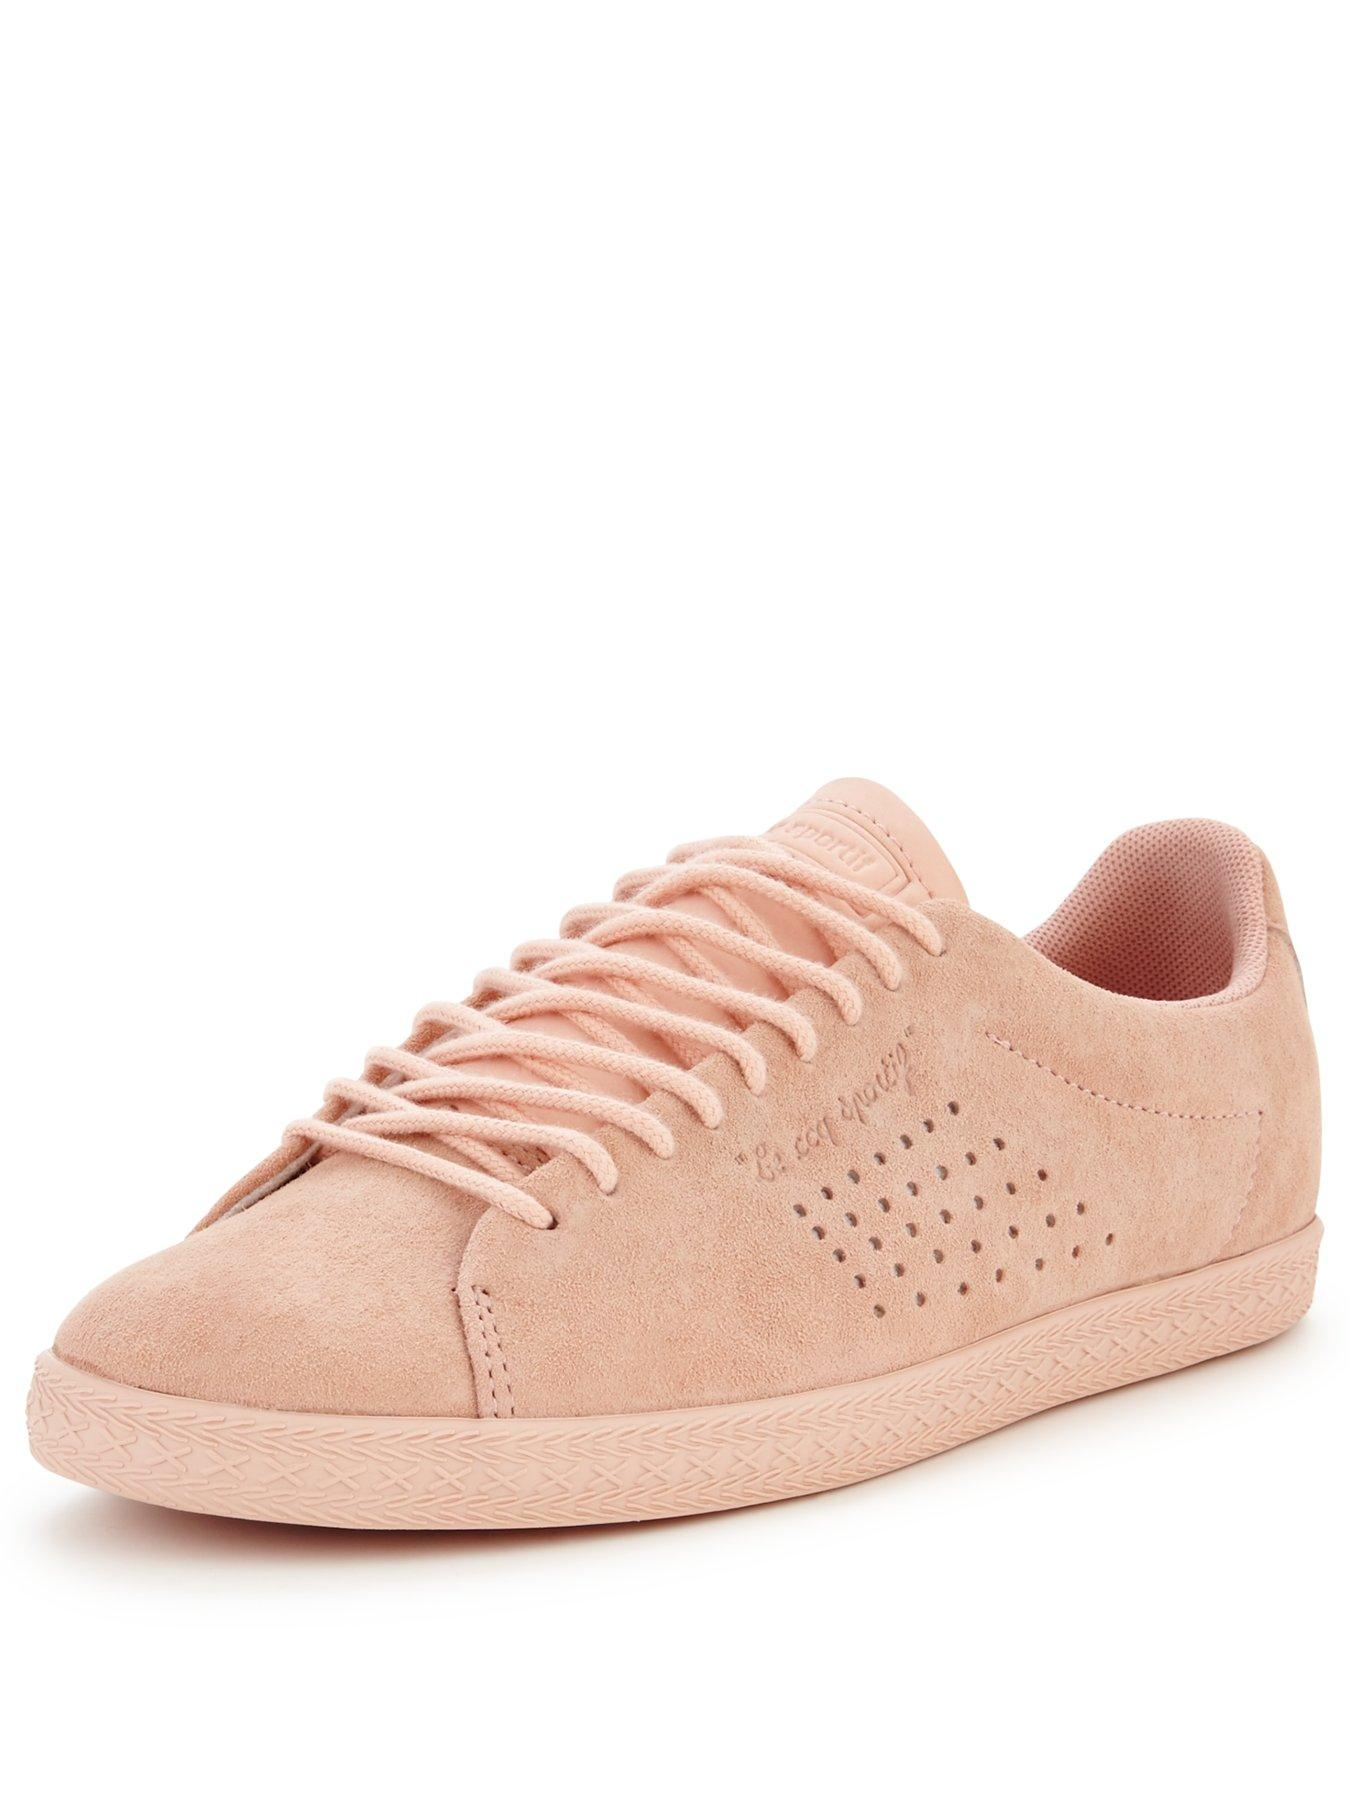 le coq sportif womens shoes pink